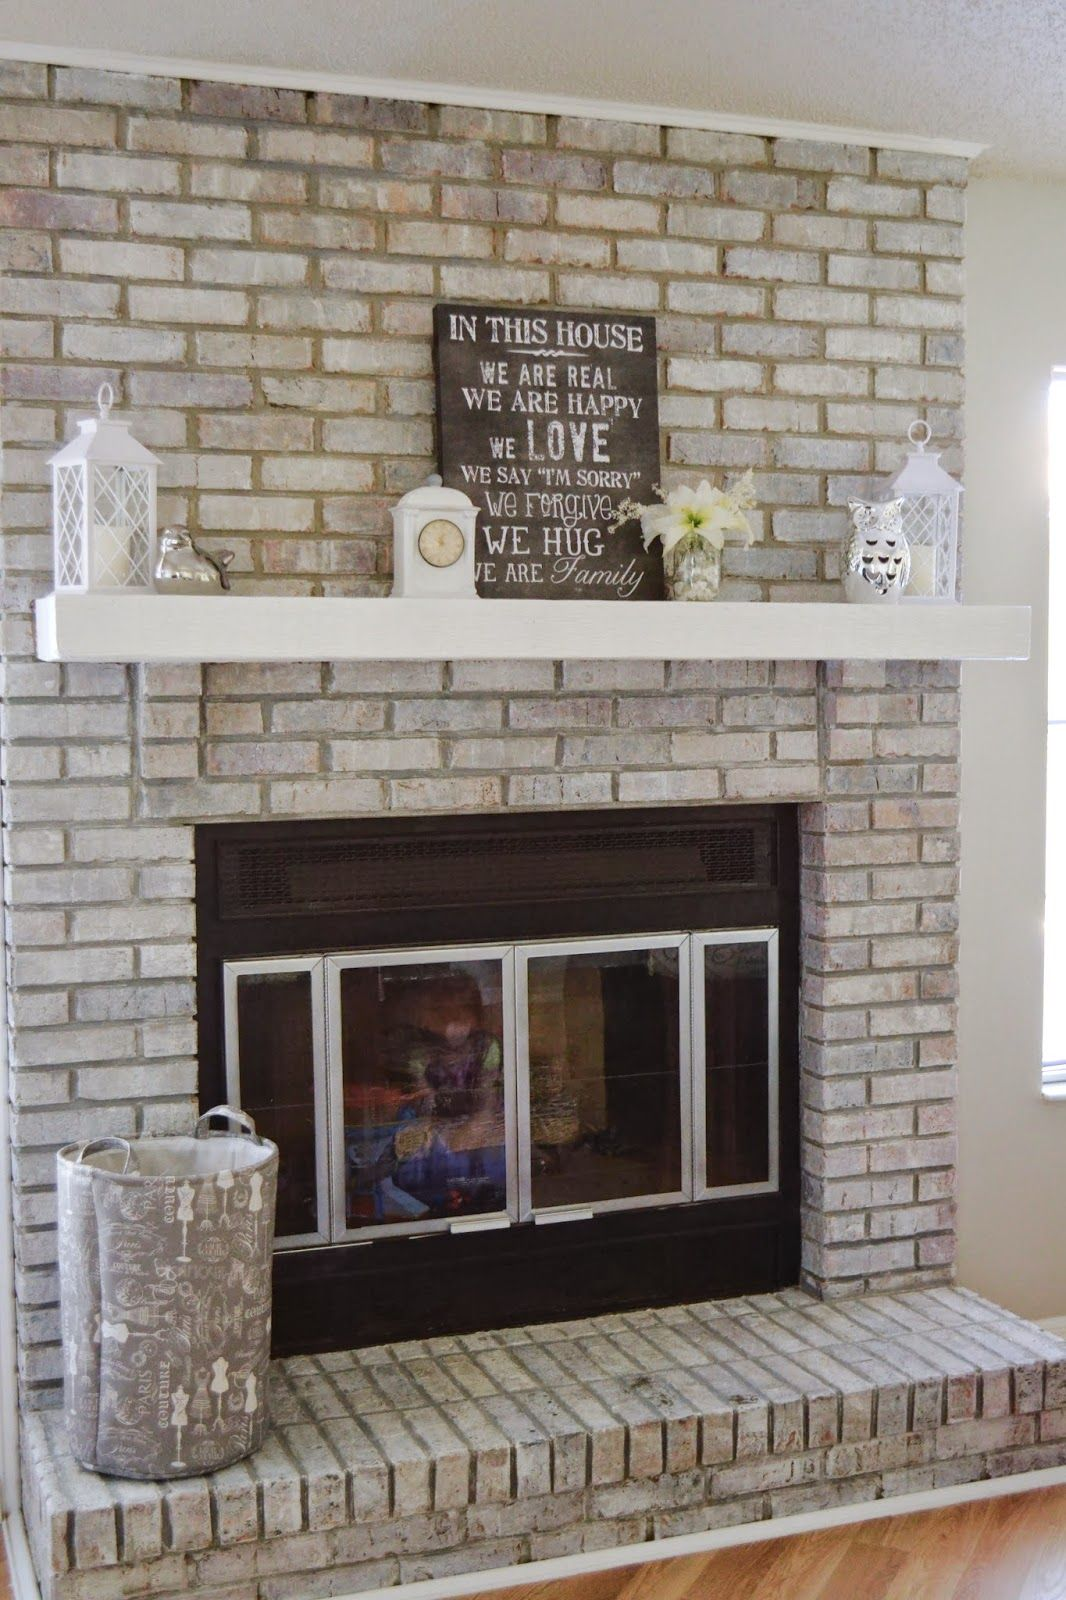 It's A Mom's World: How To White Wash Your Fireplace in 3 ...